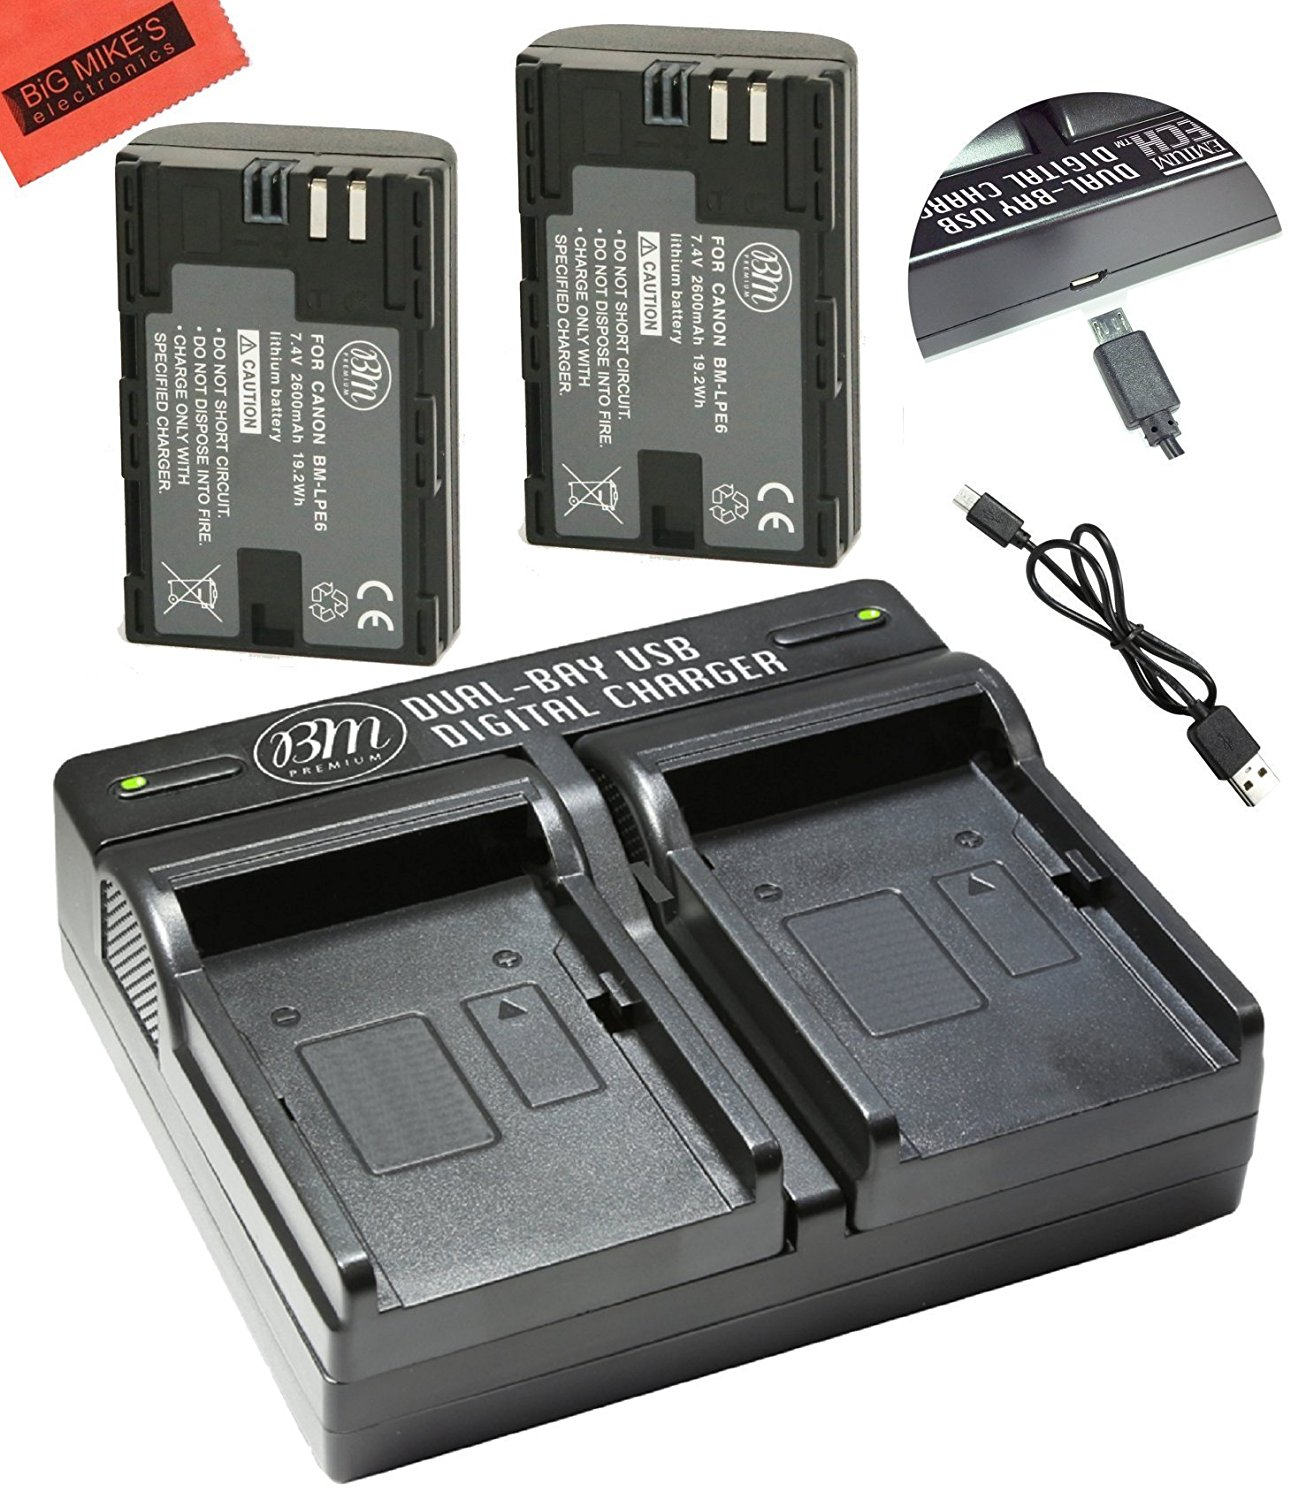 BM Premium 2-Pack of LP-E6, LP-E6N Batteries and Dual USB Battery Charger Kit for Canon C700, XC10, XC15, EOS 60D, EOS 70D, EOS 80D, EOS 5D II, EOS 5D III, EOS 5D IV, EOS 5Ds, EOS 6D, EOS 7D, EOS 7D Mark II Digital SLR Camera